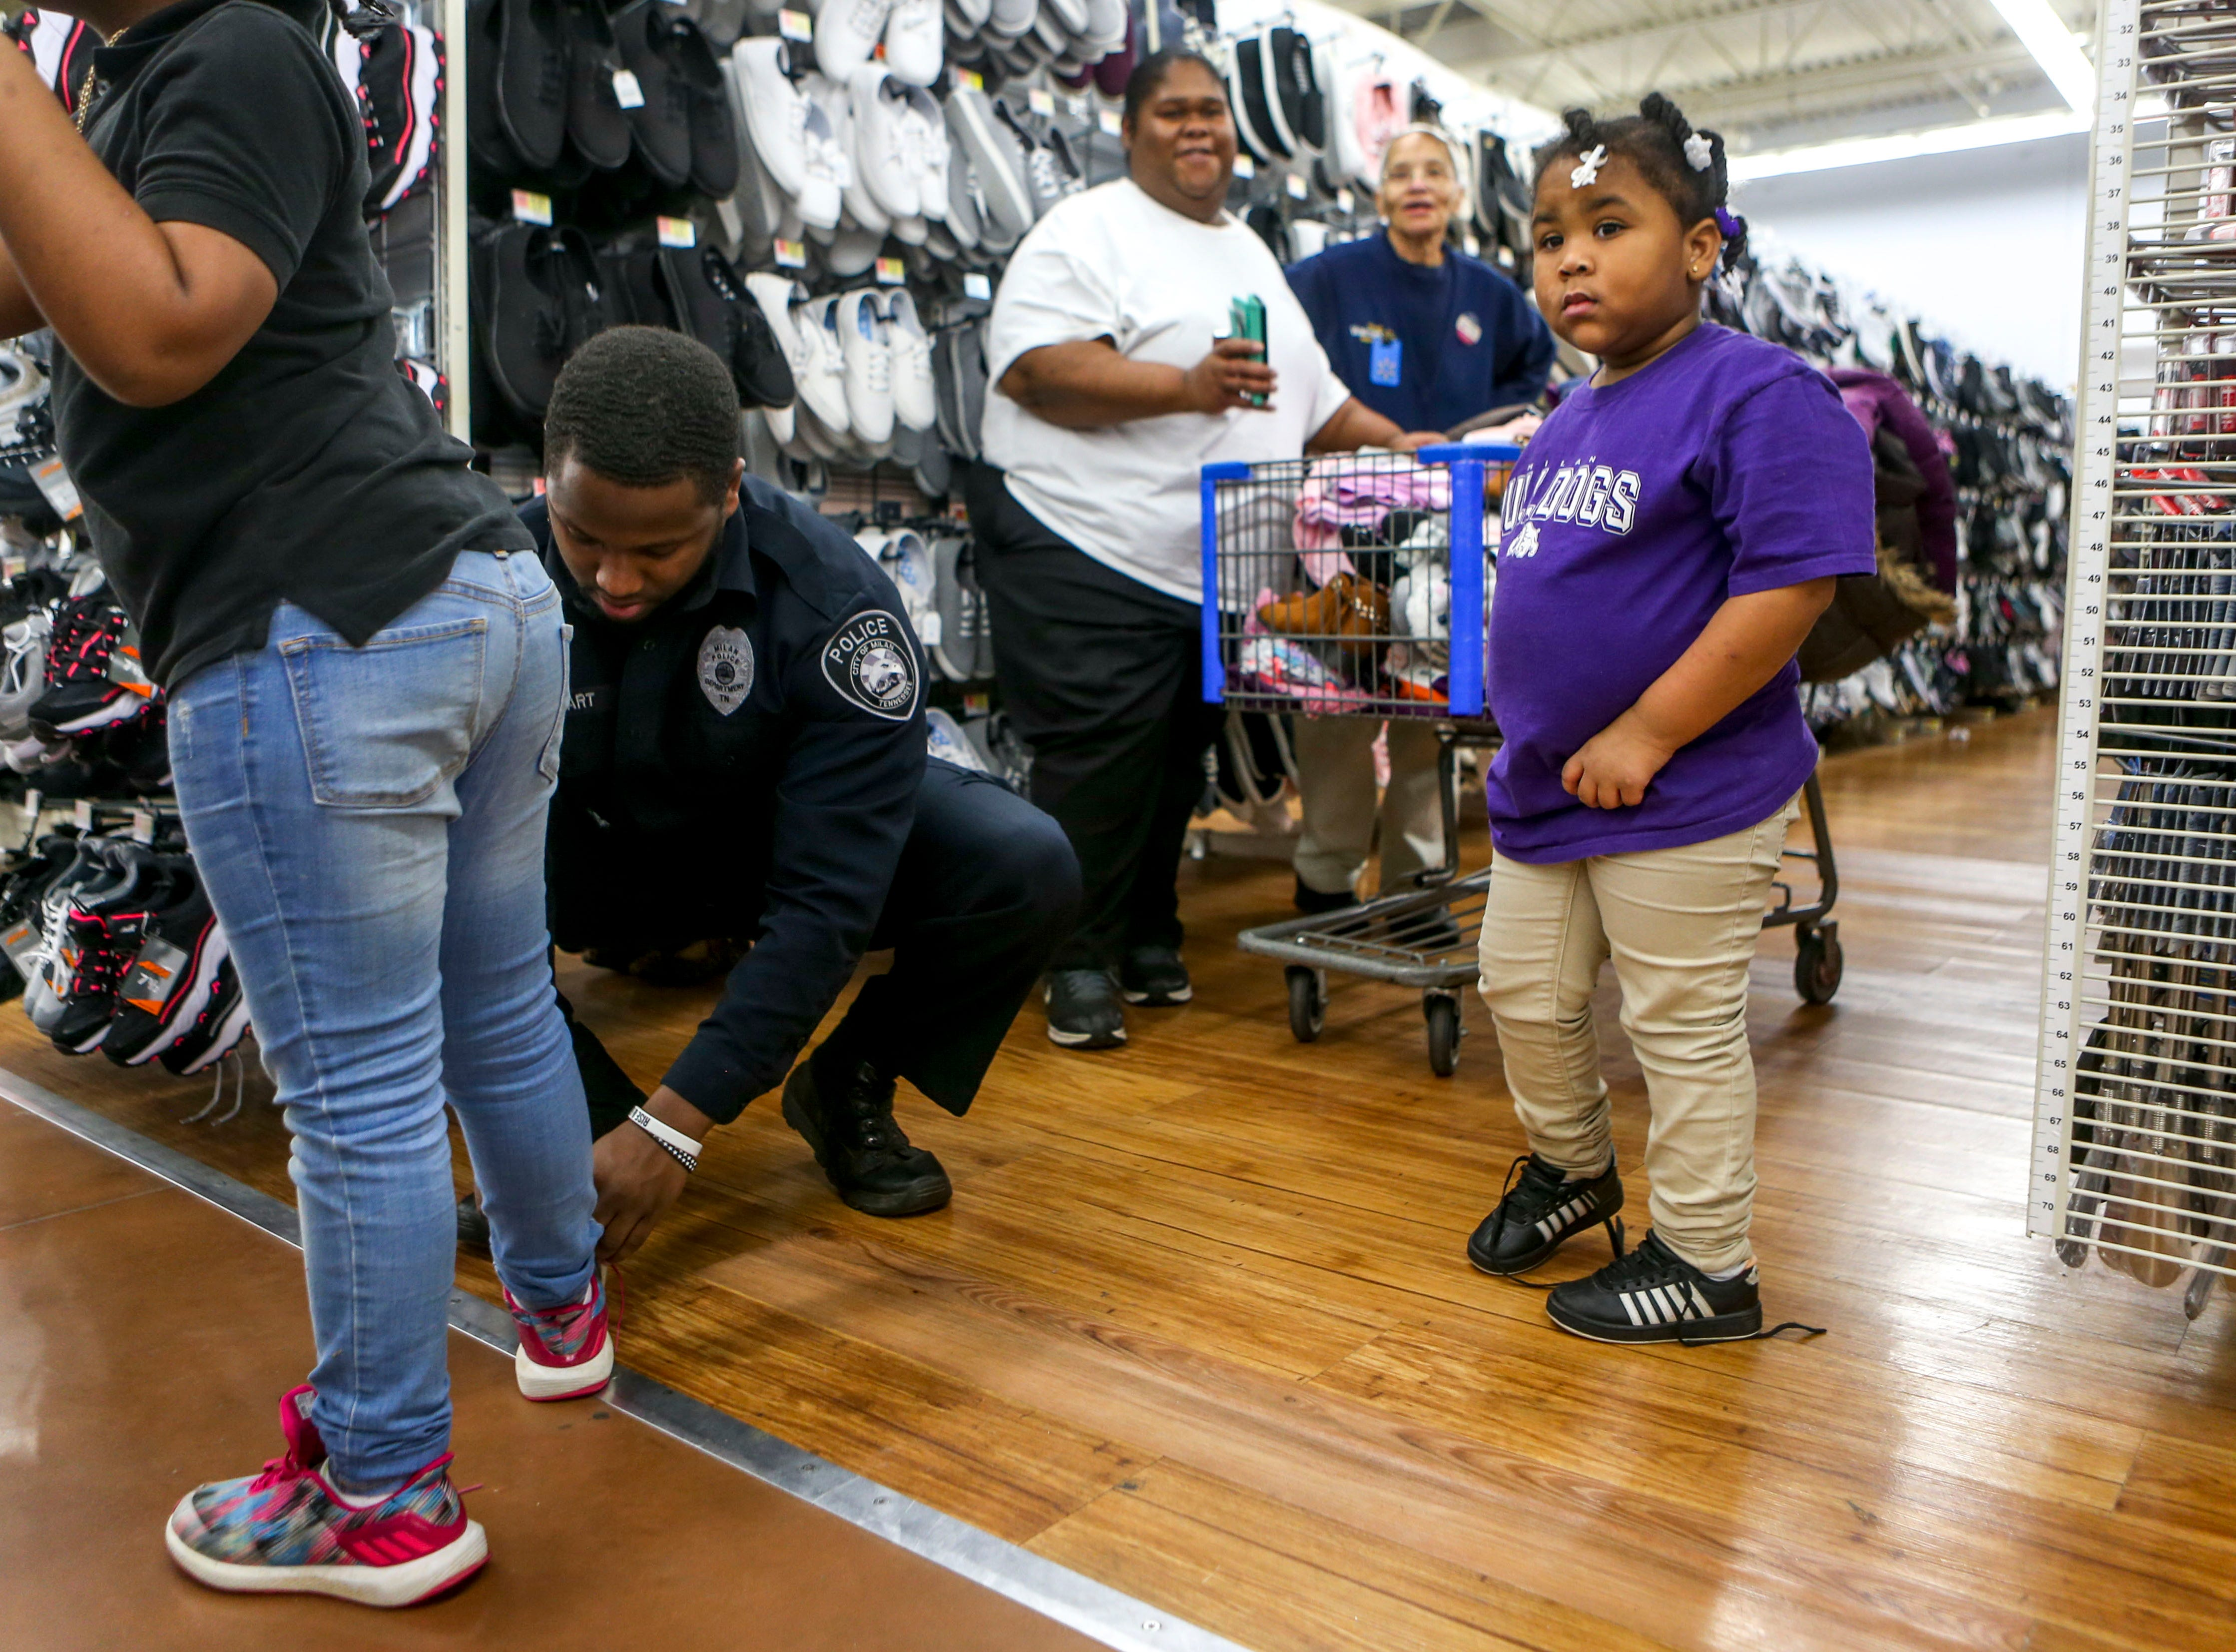 Milan Police officer Hakim Hart helps tie the shoes of Beautiful Gaines, 7, while Brihanna Gaines, 4, waits for her turn to try on shoes during shopping time for the annual Shop with a Cop program at Walmart in Milan, Tenn., on Thursday, Dec. 13, 2018.